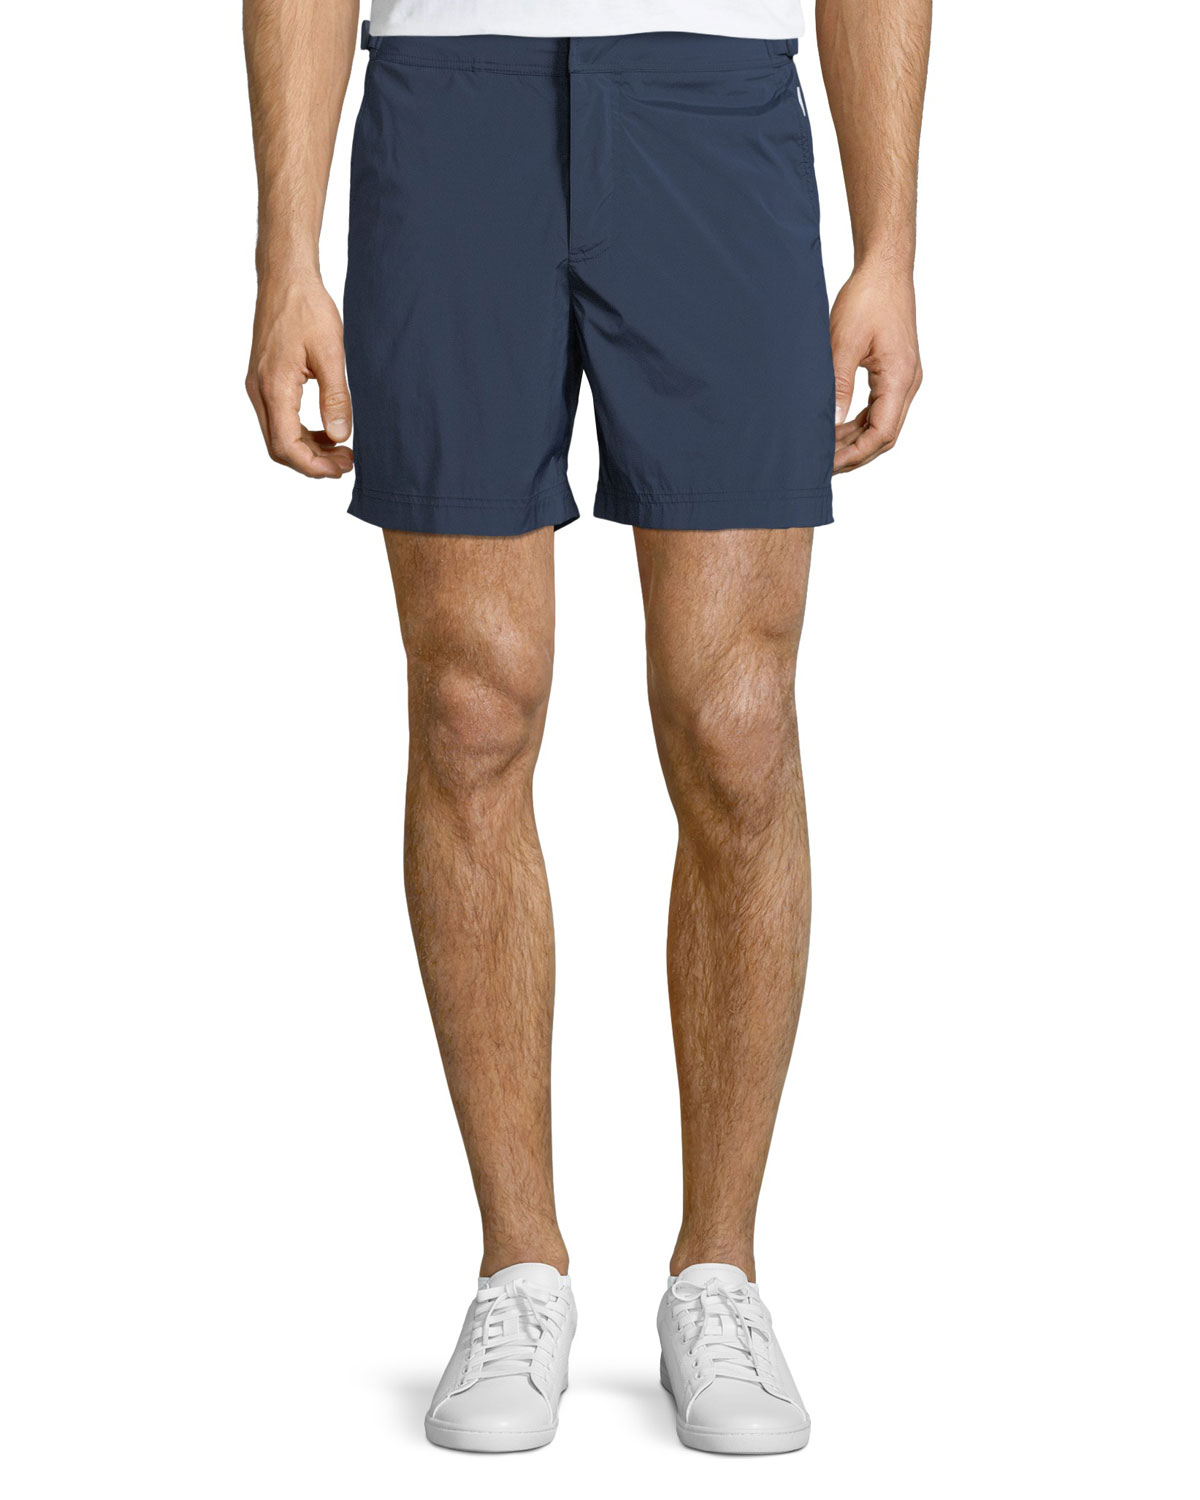 Bulldog Sport Swim Trunks Navy